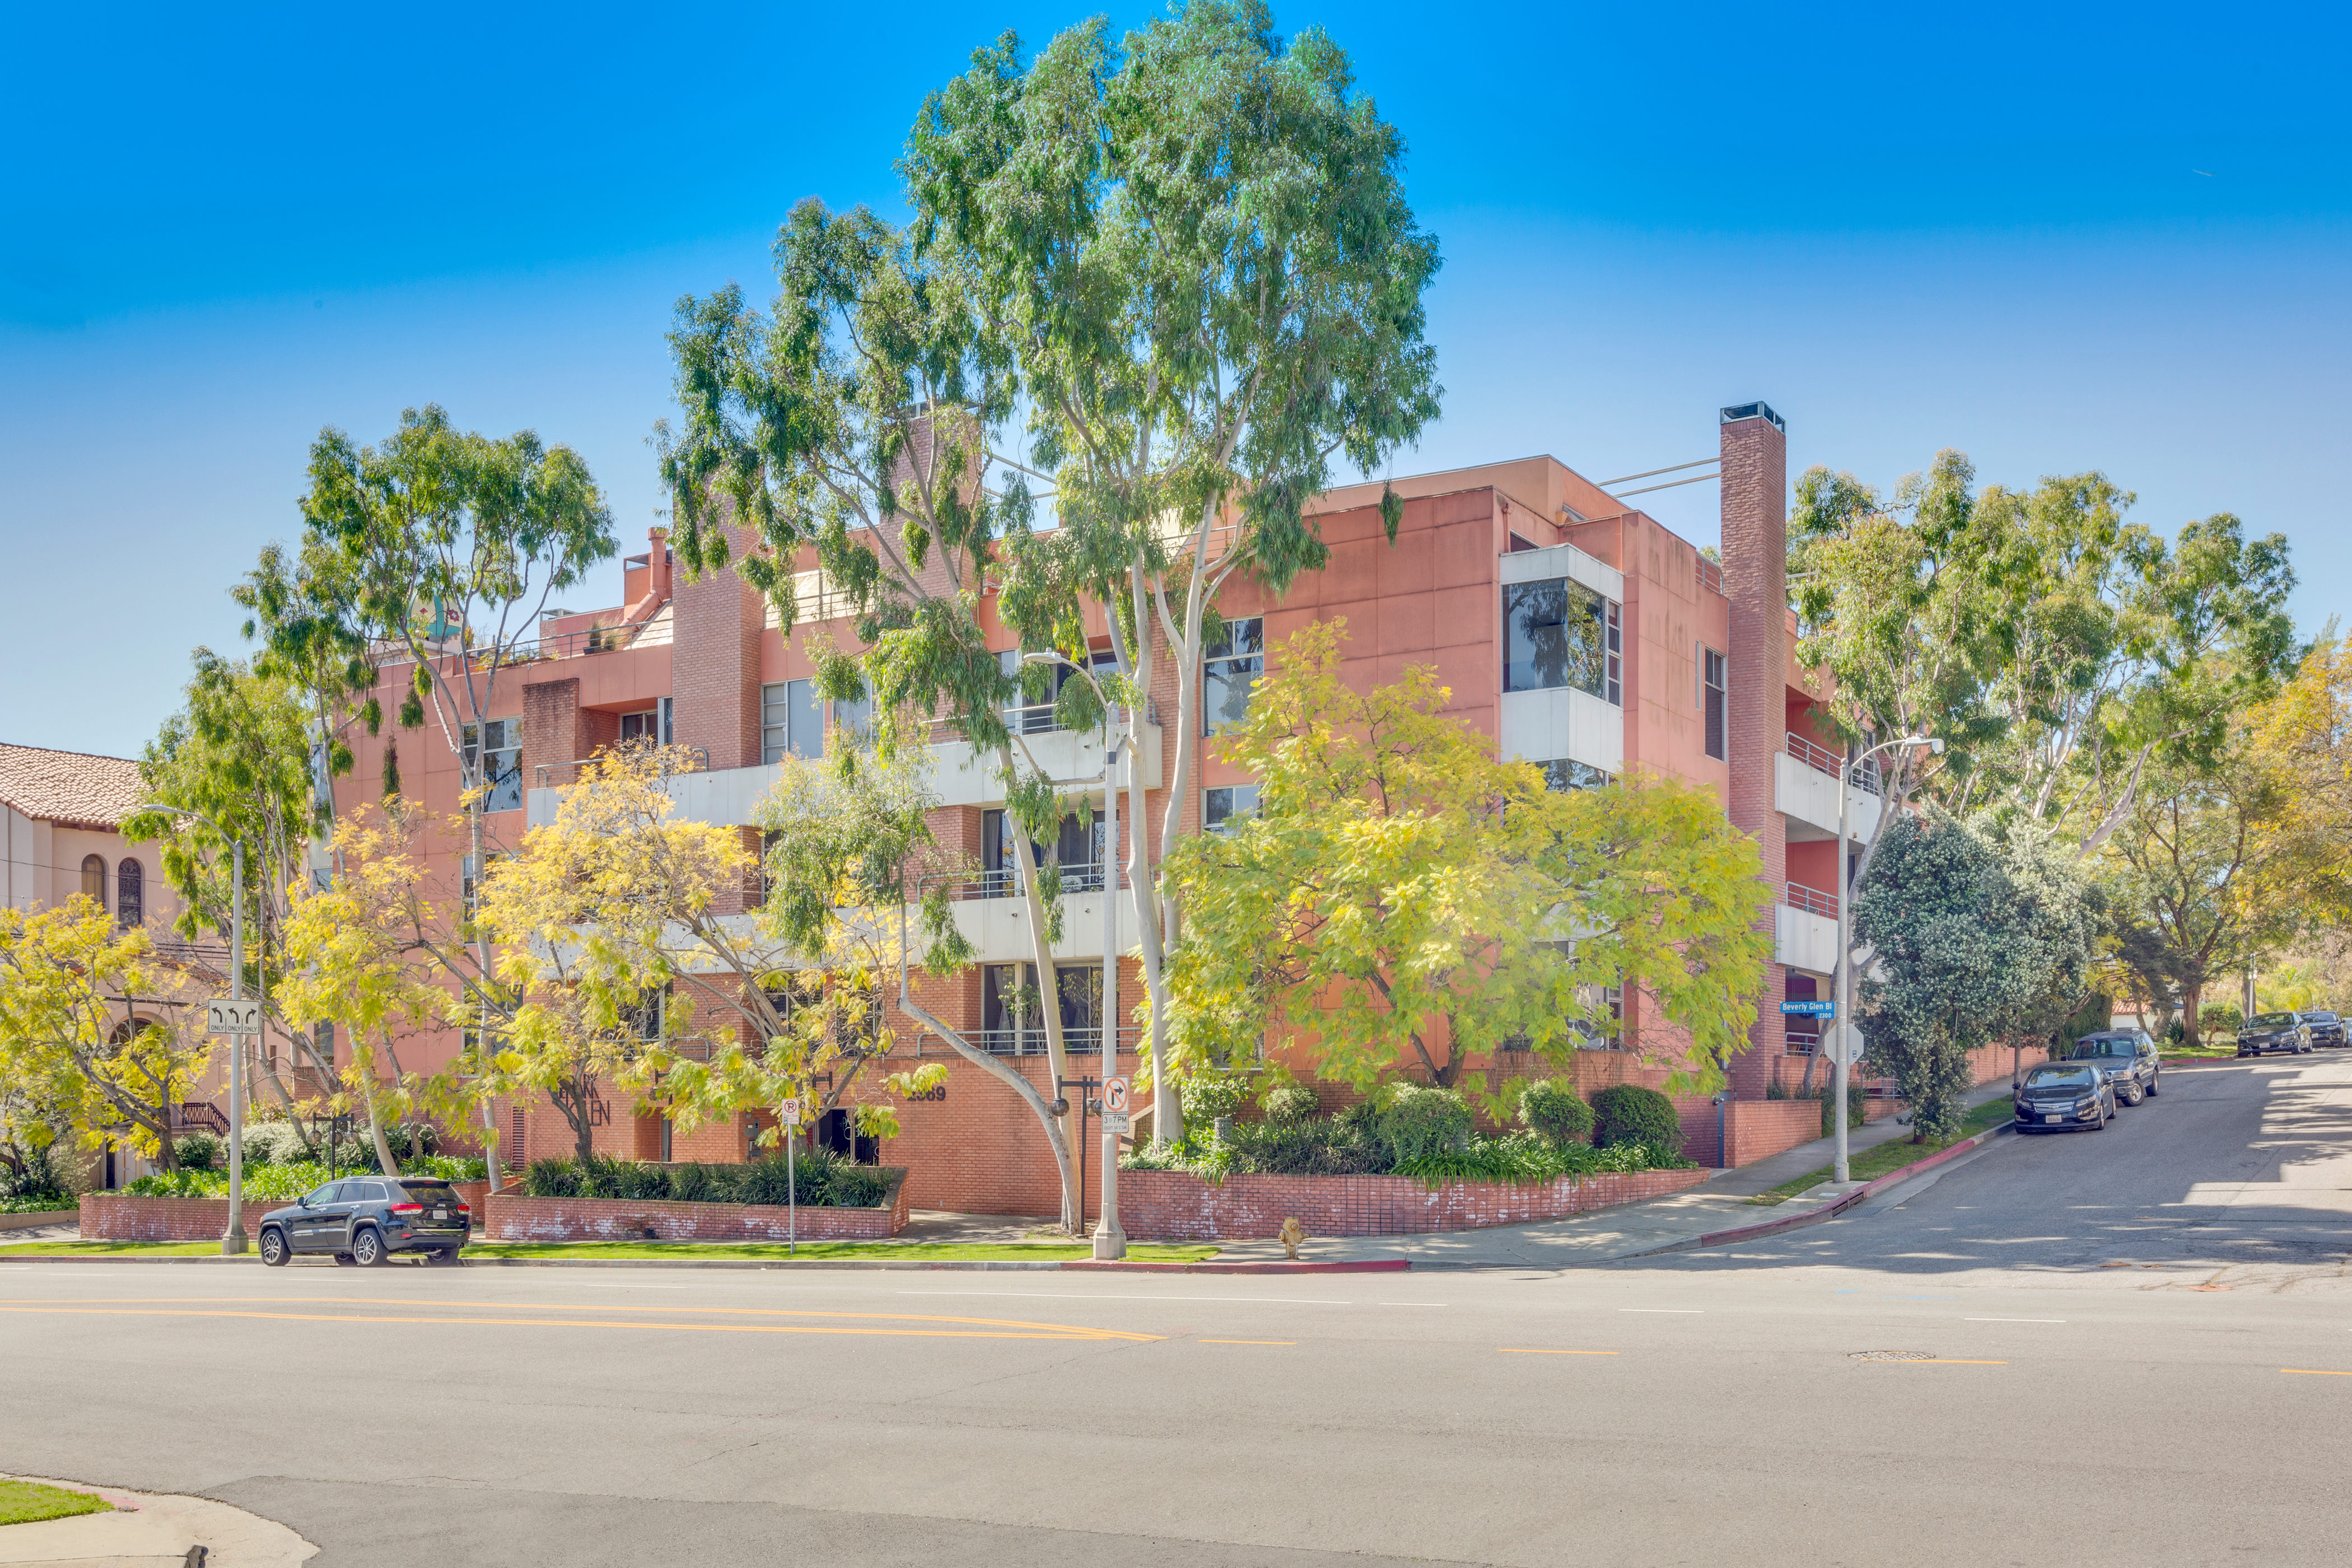 2369 S Beverly Glen Boulevard, #201 - Brad Keyes Real Estate